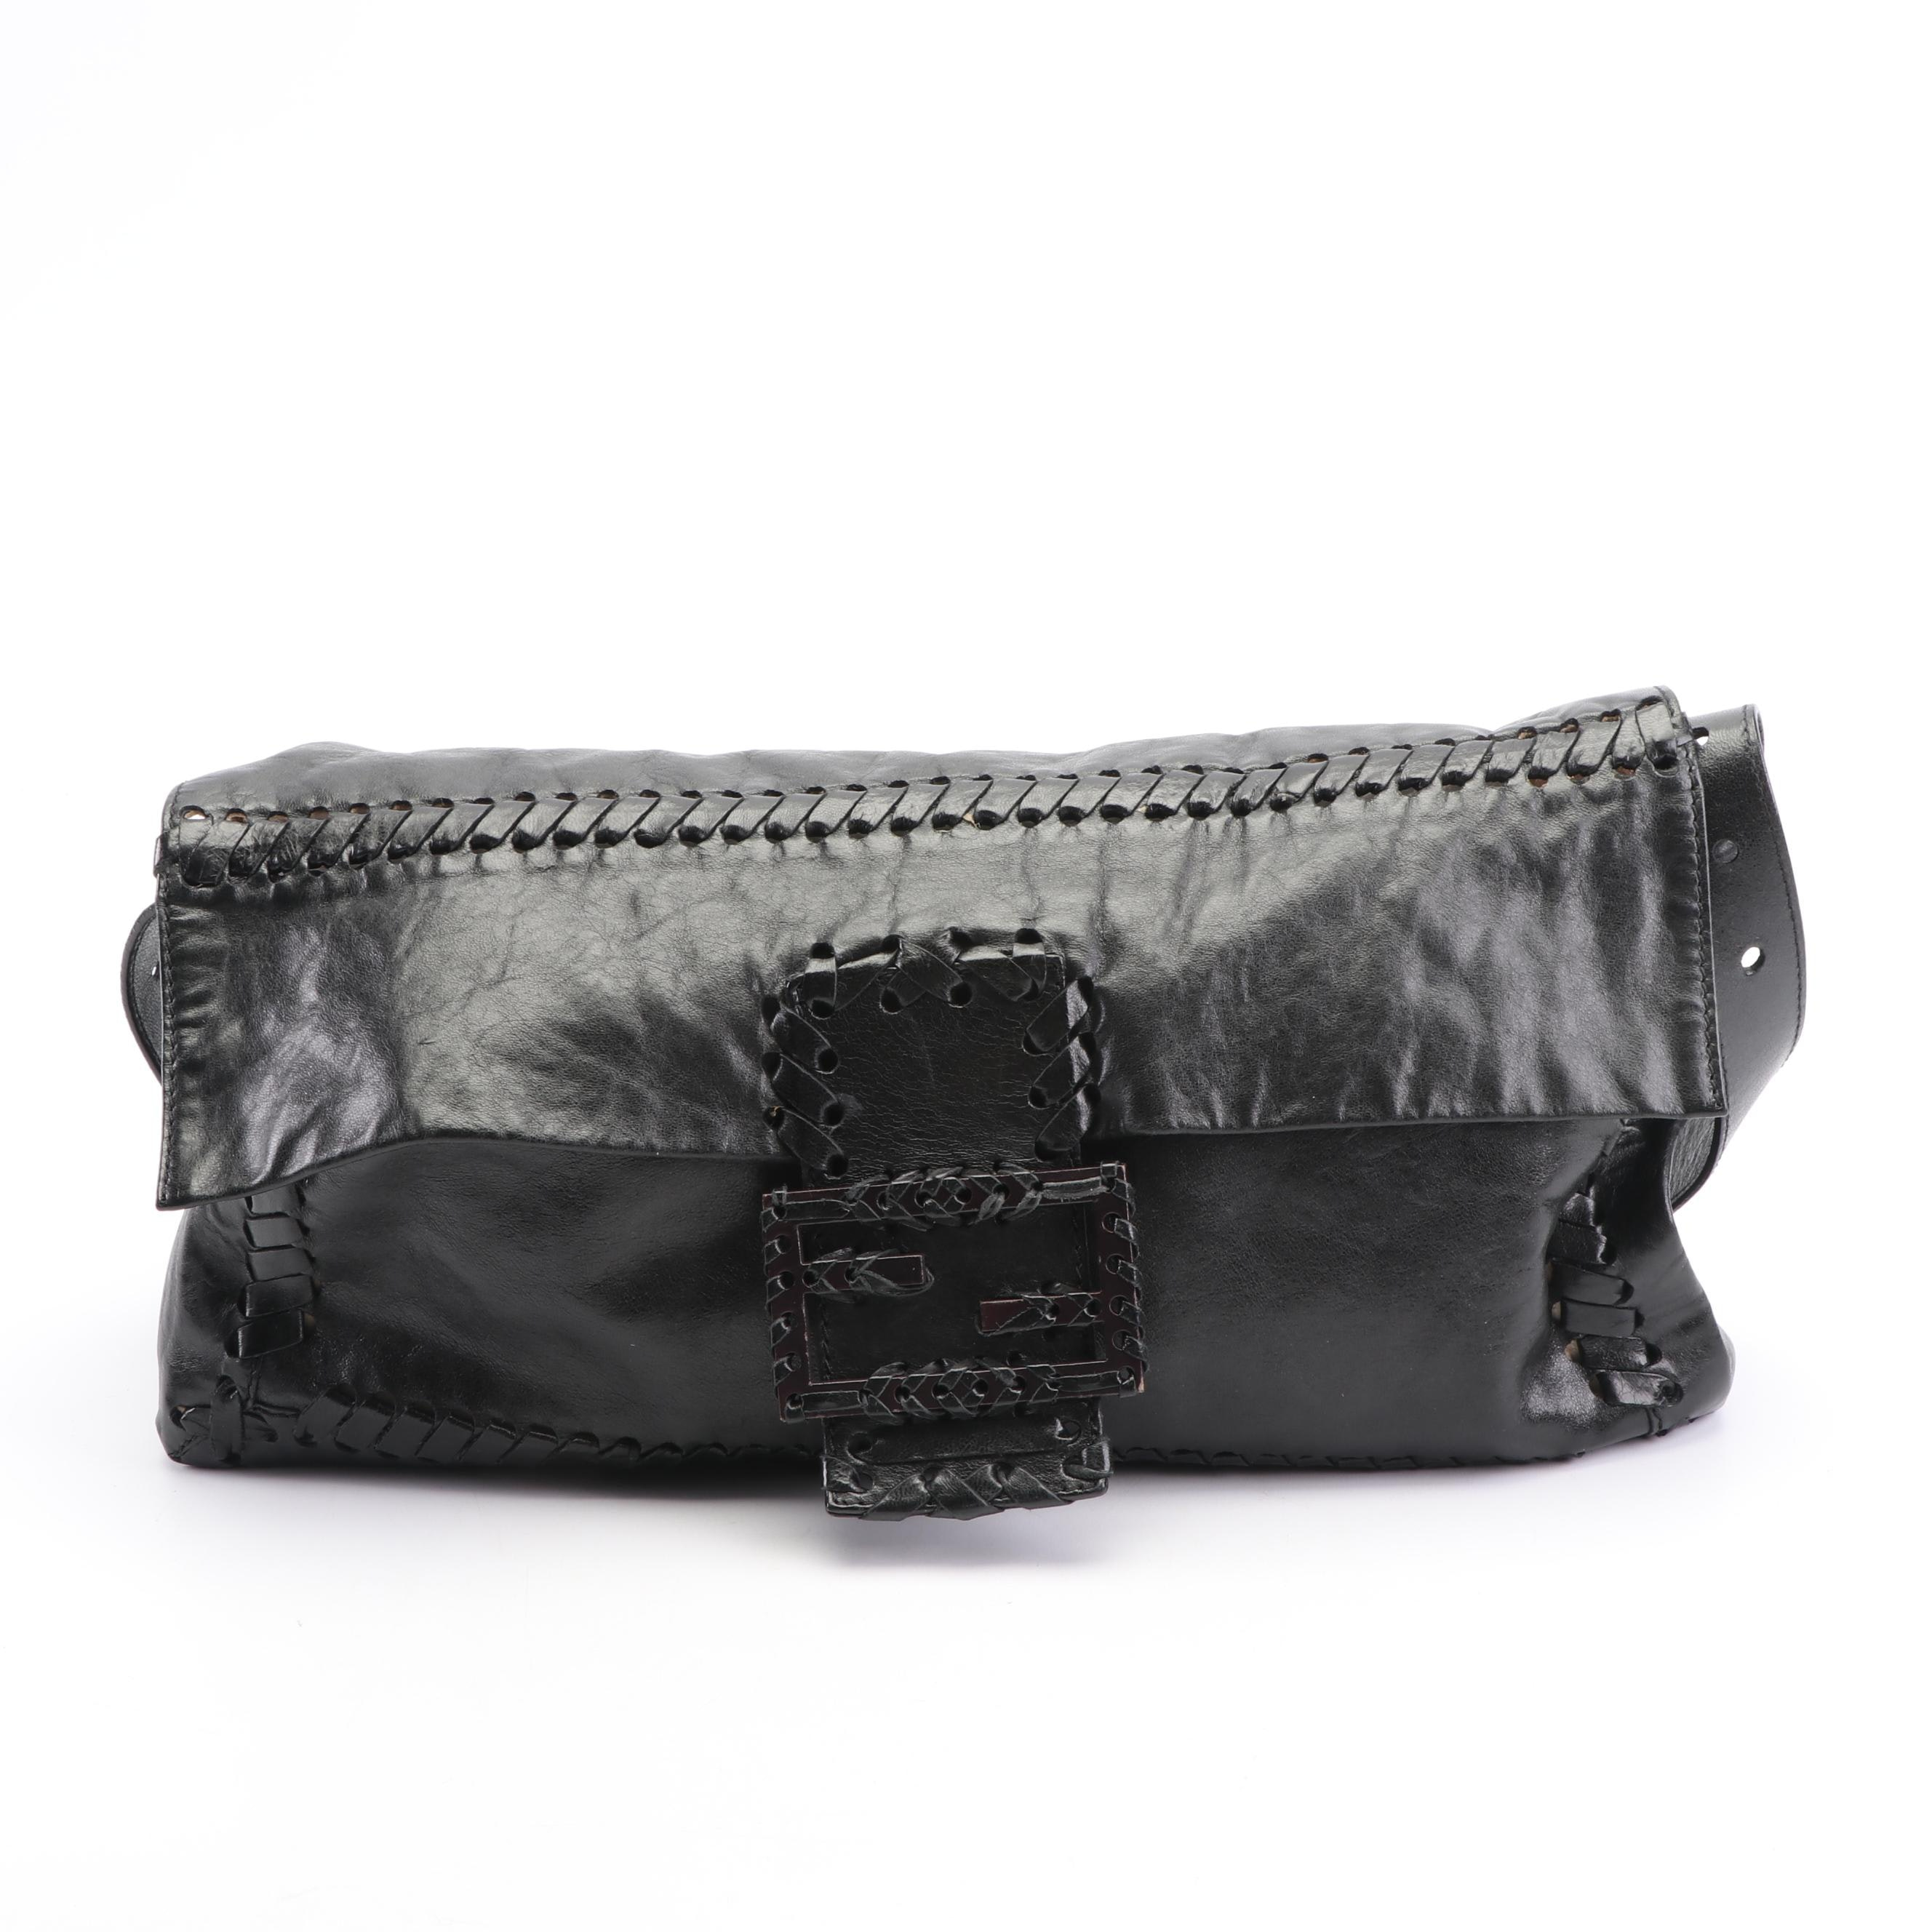 Fendi Black Leather Baguette with Woven Trim, Made in Italy